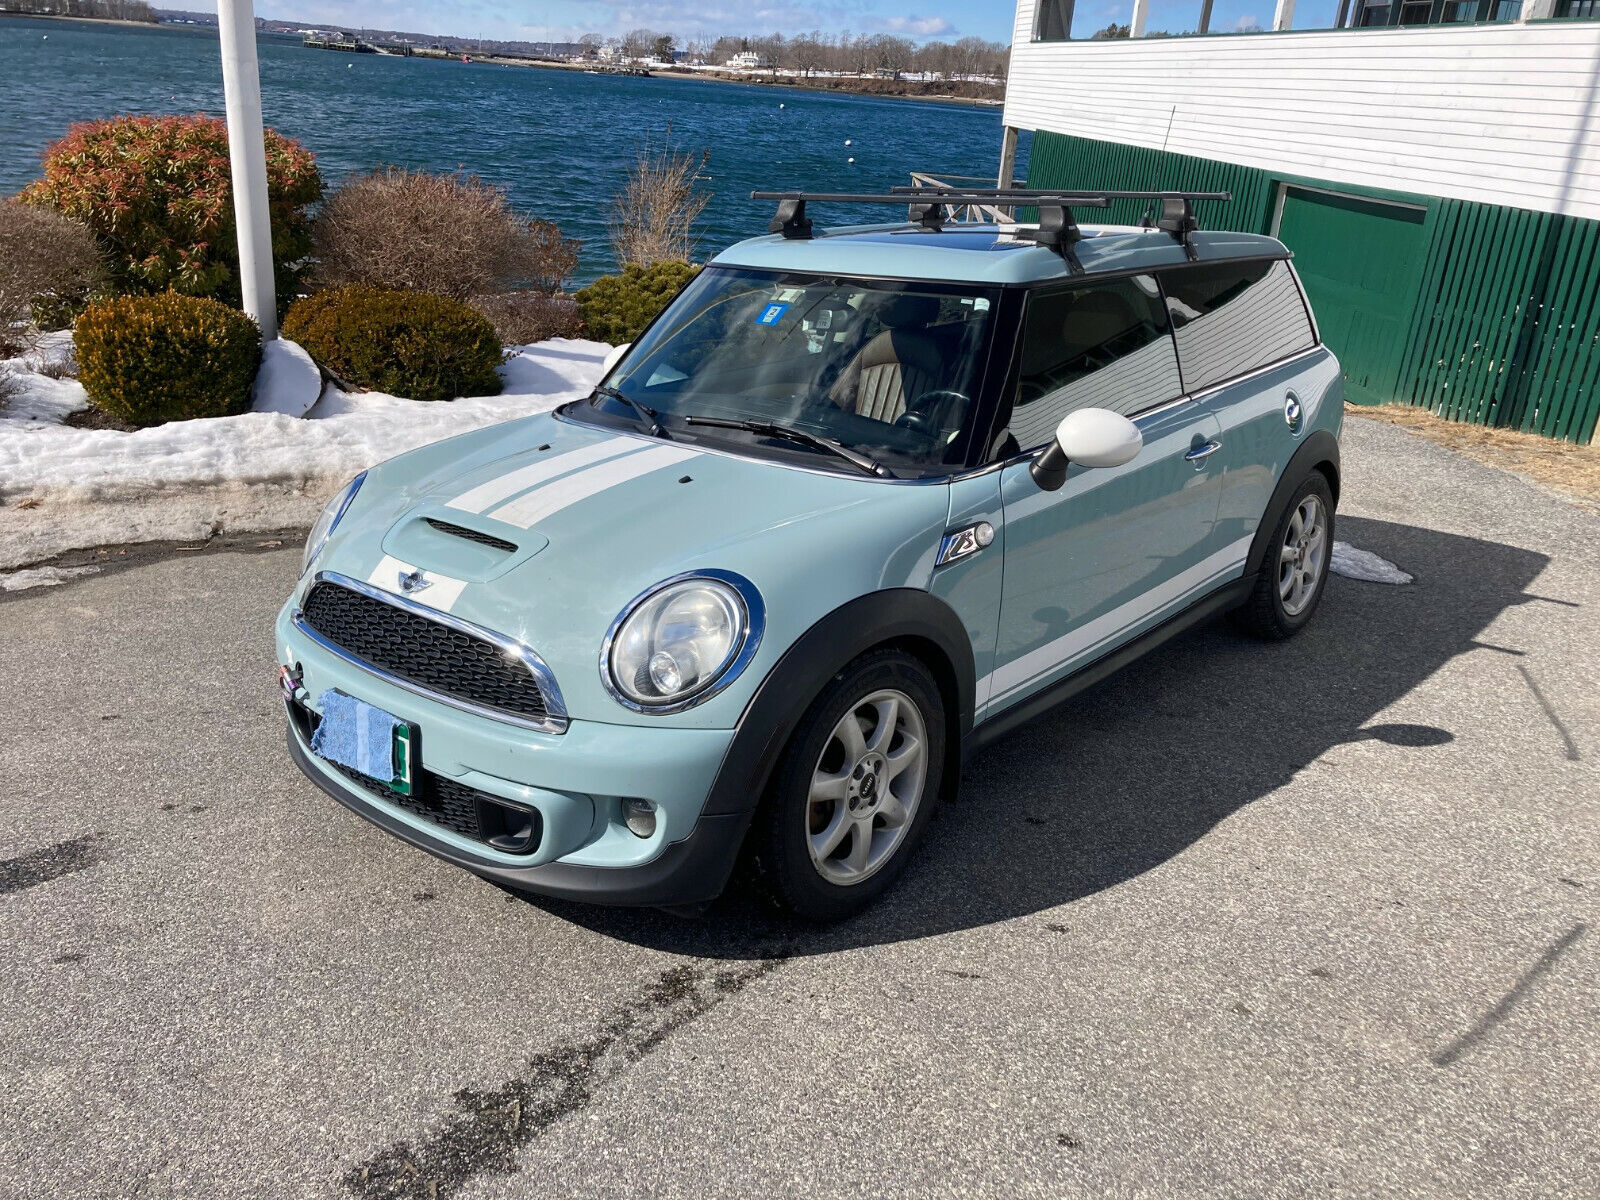 2014 Mini Clubman S - Manual/Cold Weather/Nav/Leather/Sport